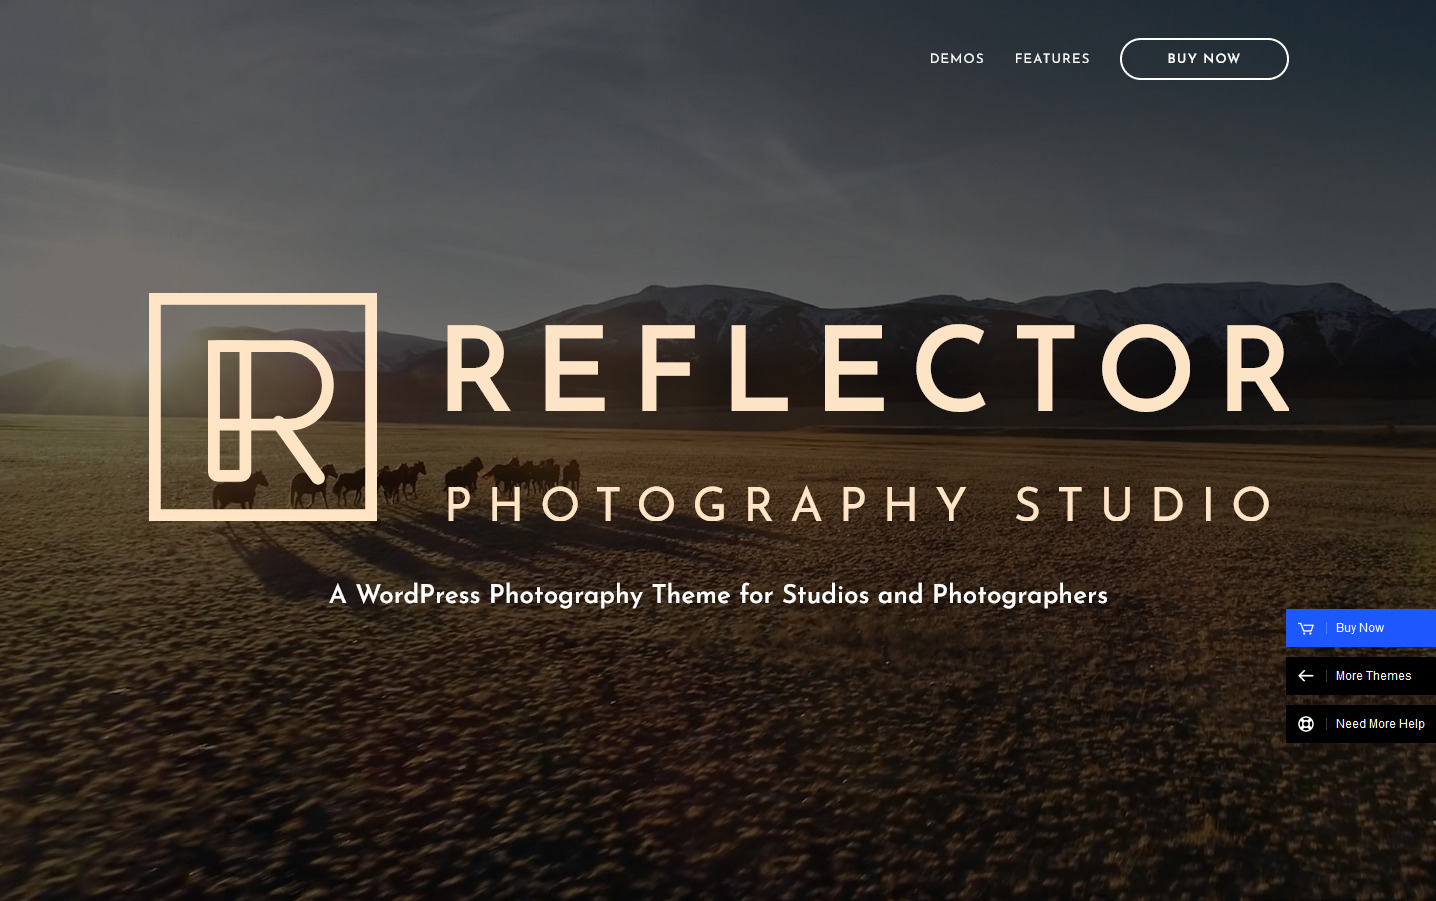 Reflextor Photo and Video Studio WordPress Theme